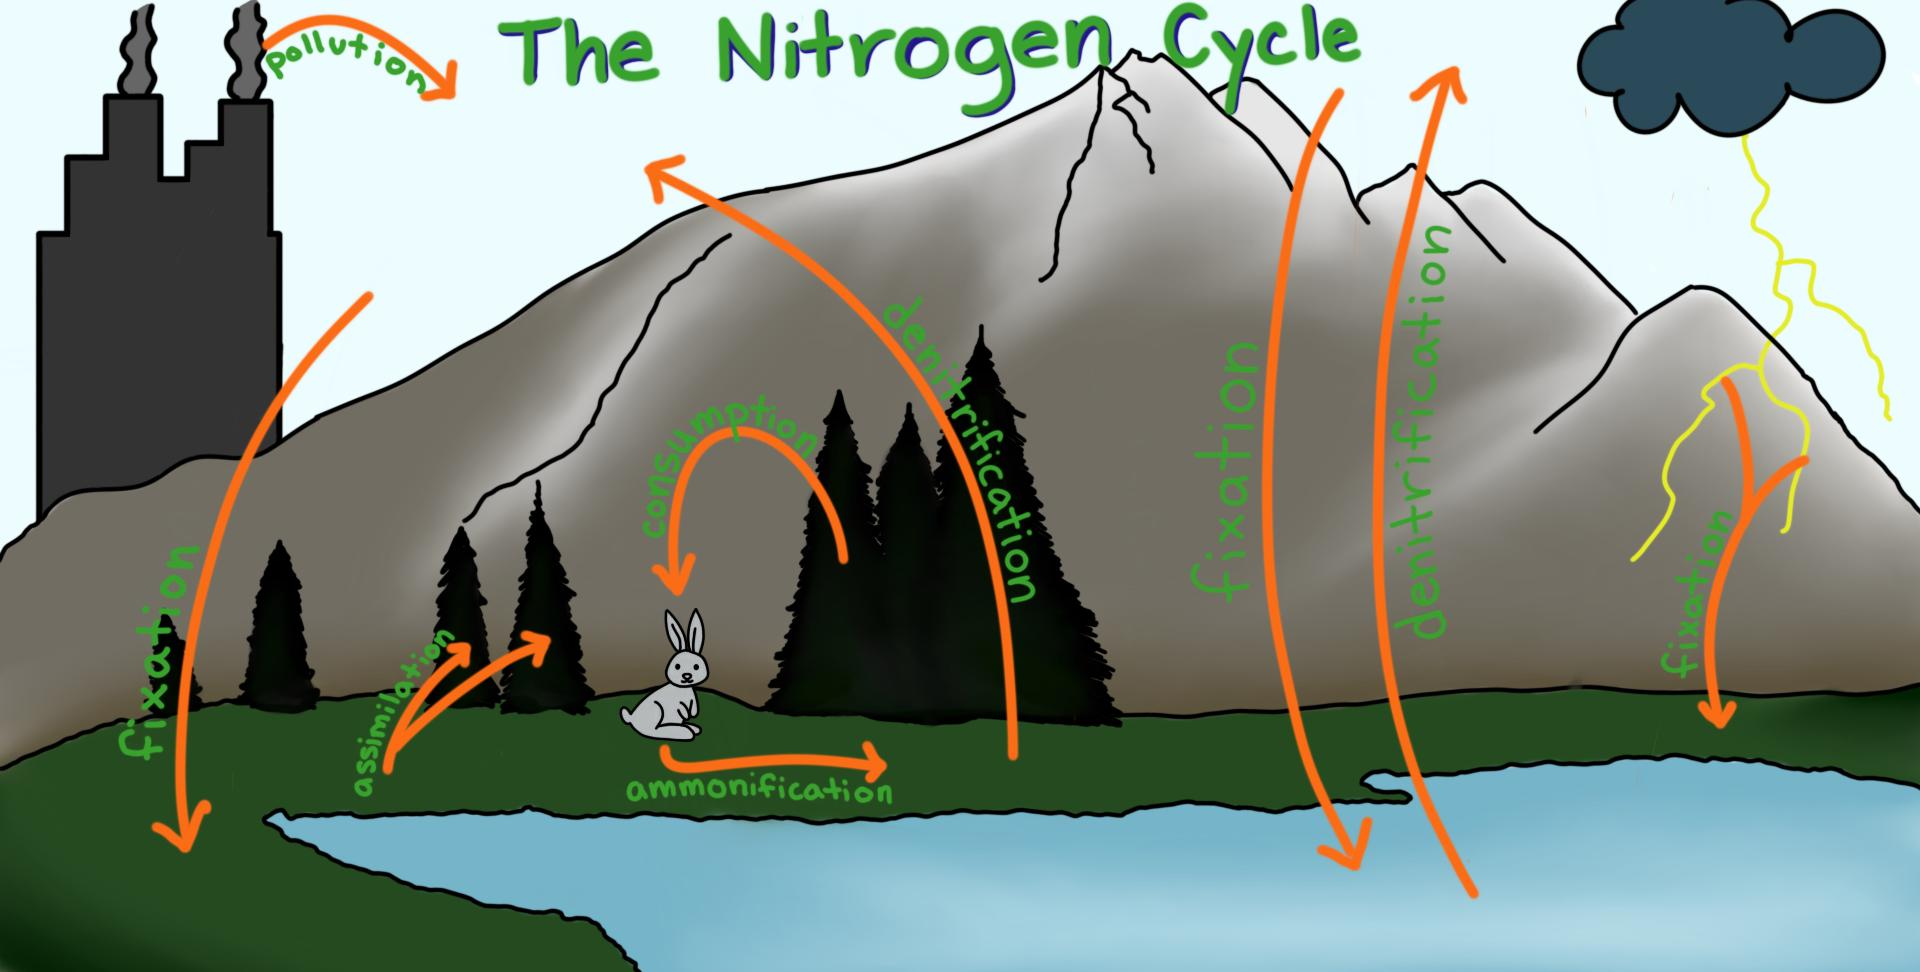 hight resolution of a diagram showing some ways in which nitrogen is transferred around the biosphere and atmosphere